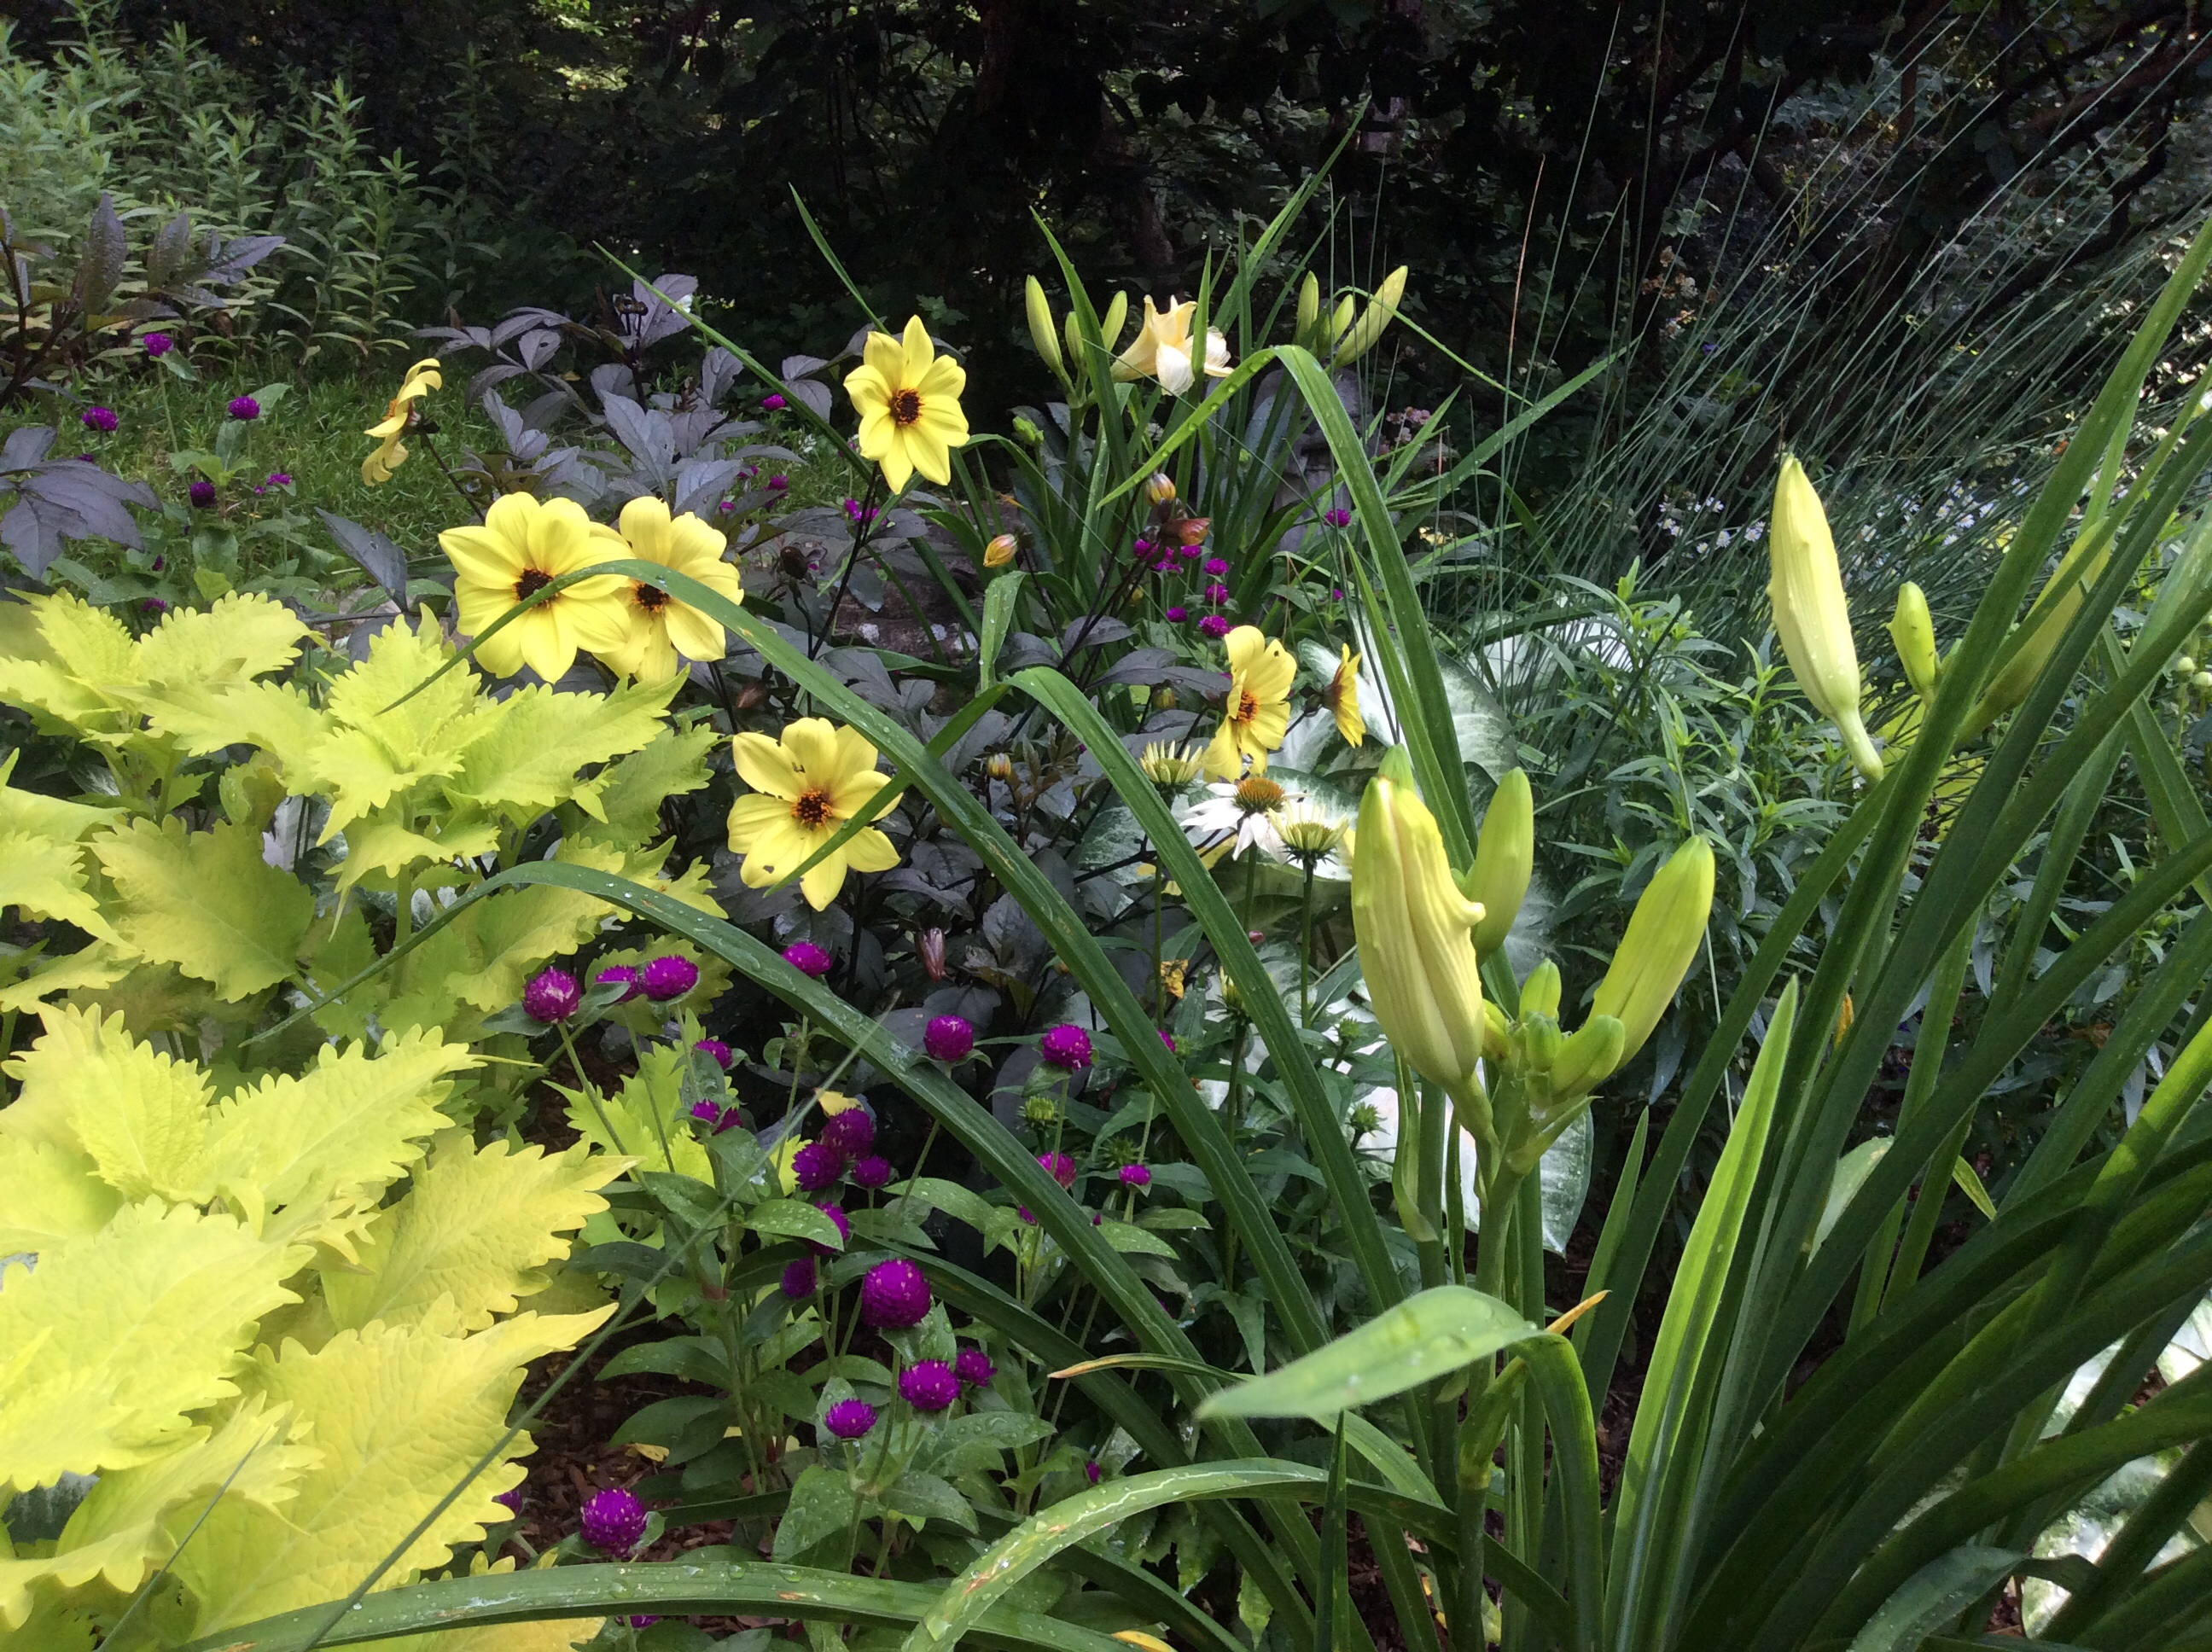 Purple gomphrena, Coleus, Mystic 'Illusion' dahlias, day lily 'Joan Señor'. 'Pow Wow White' coneflower